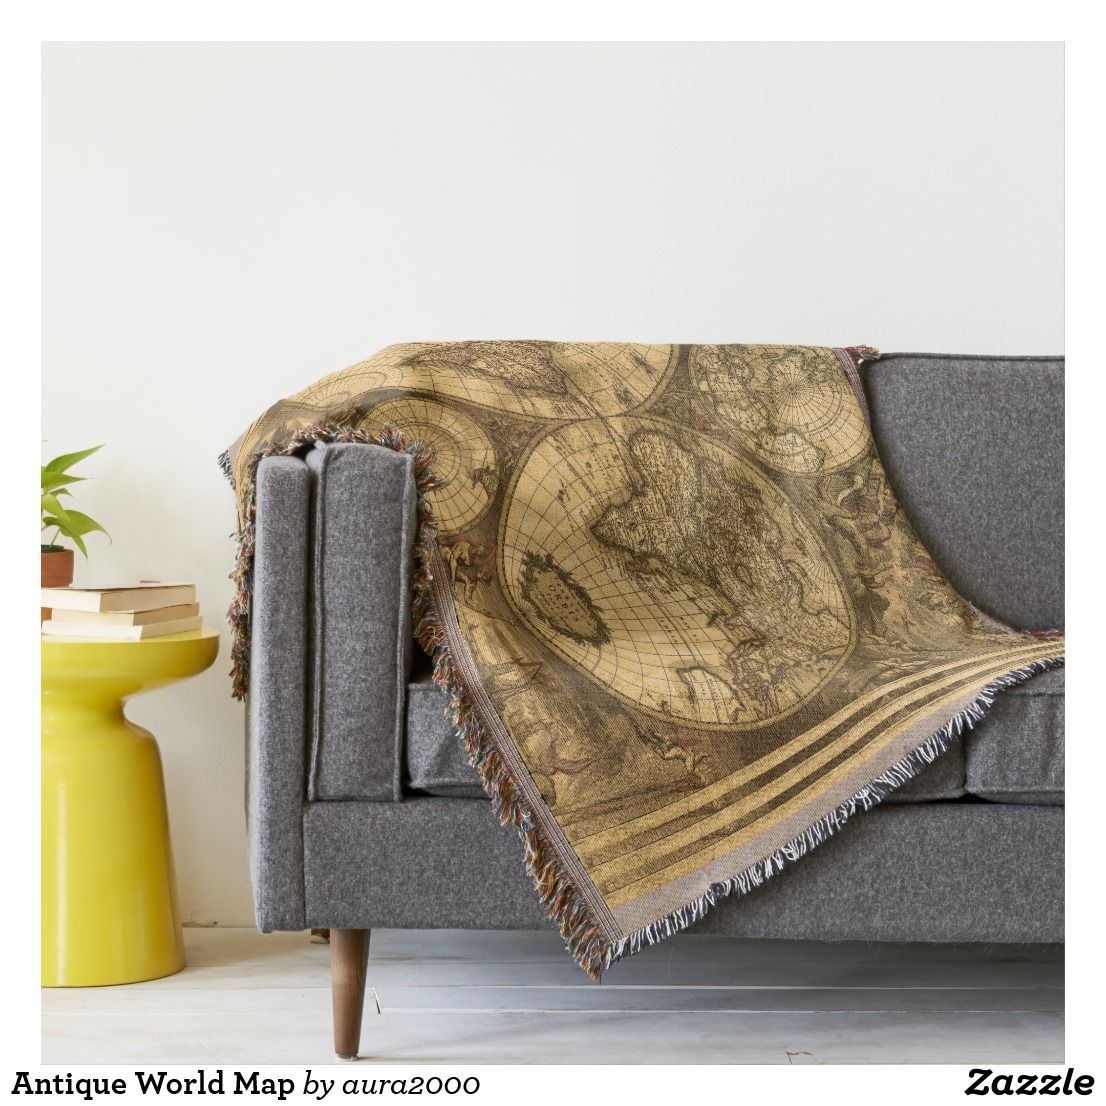 Antique world map throw blanket stuff sold on zazzle pinterest antique world map throw blanket gumiabroncs